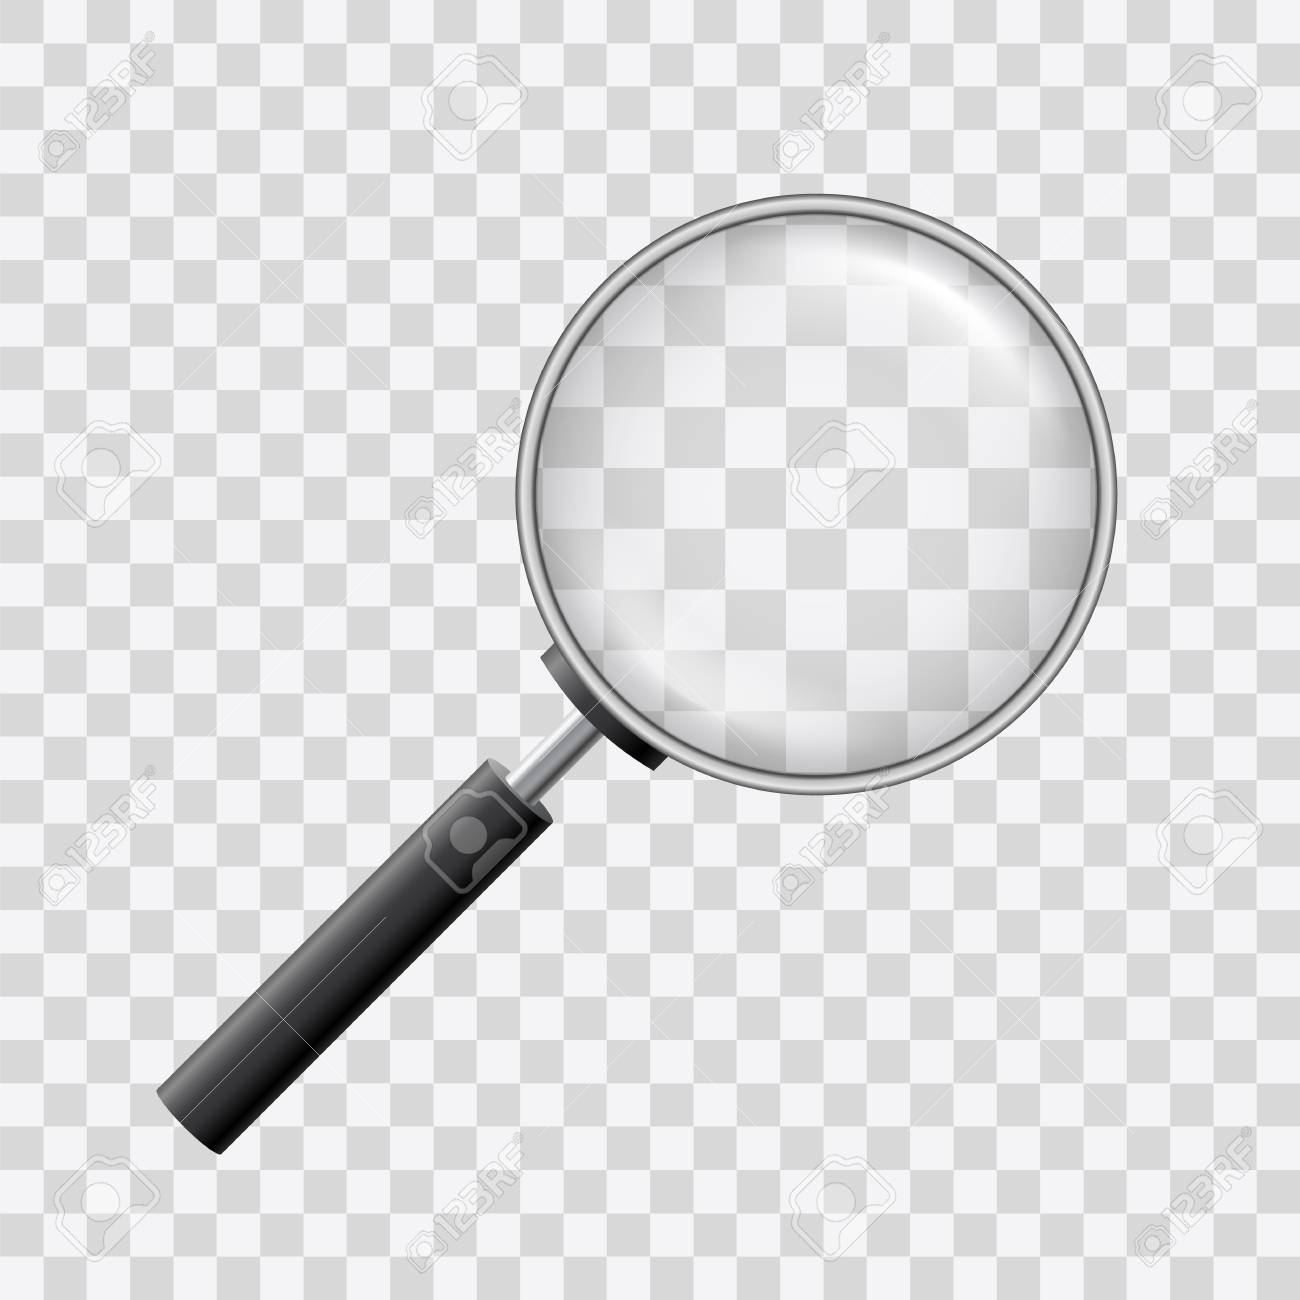 Beautiful vector of a loupe with magnyfying glass on transparent background. - 125229407